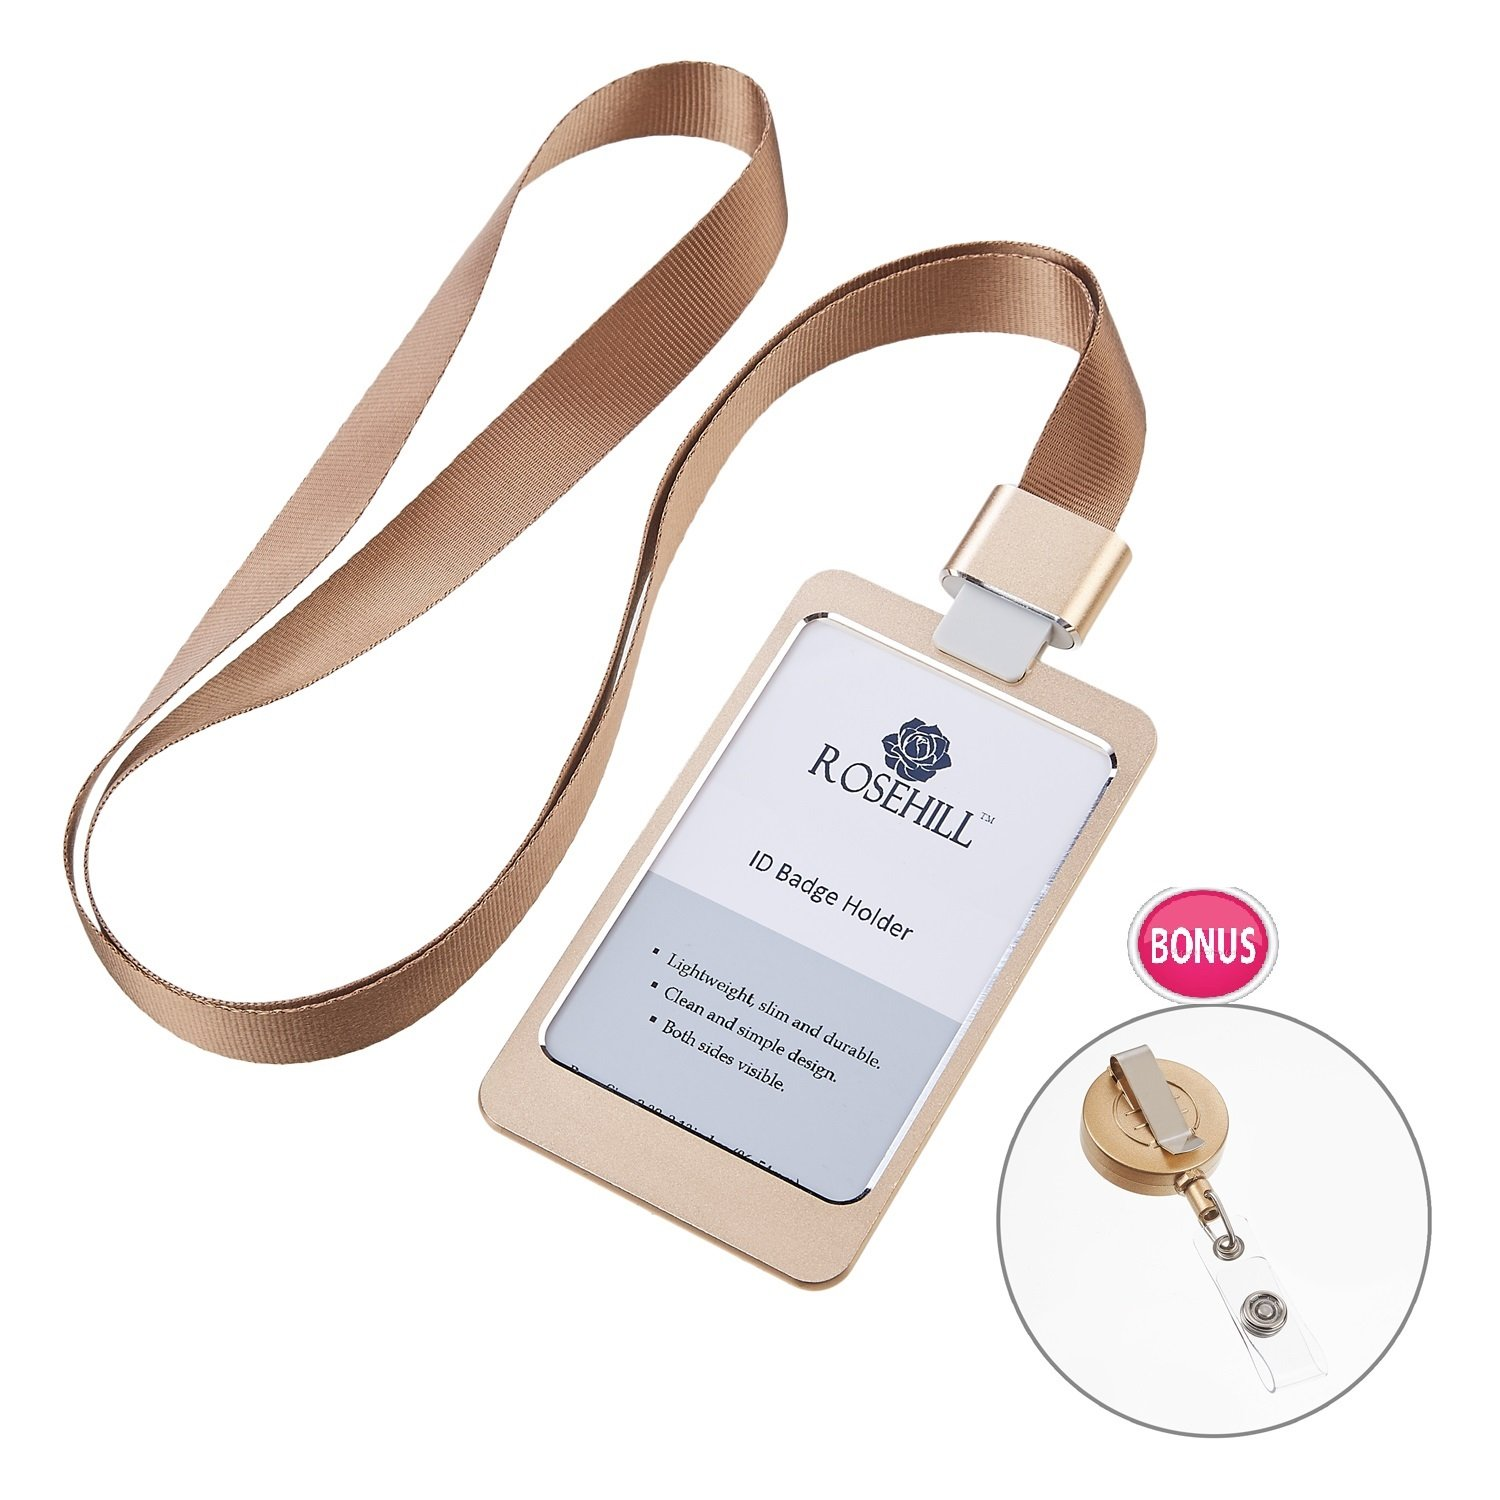 Rosehill Business 2-sided Metal ID Badge Holder with Detachable Lanyard/Strap (Bonus:Retractable ID Badge Reel) (Gold)